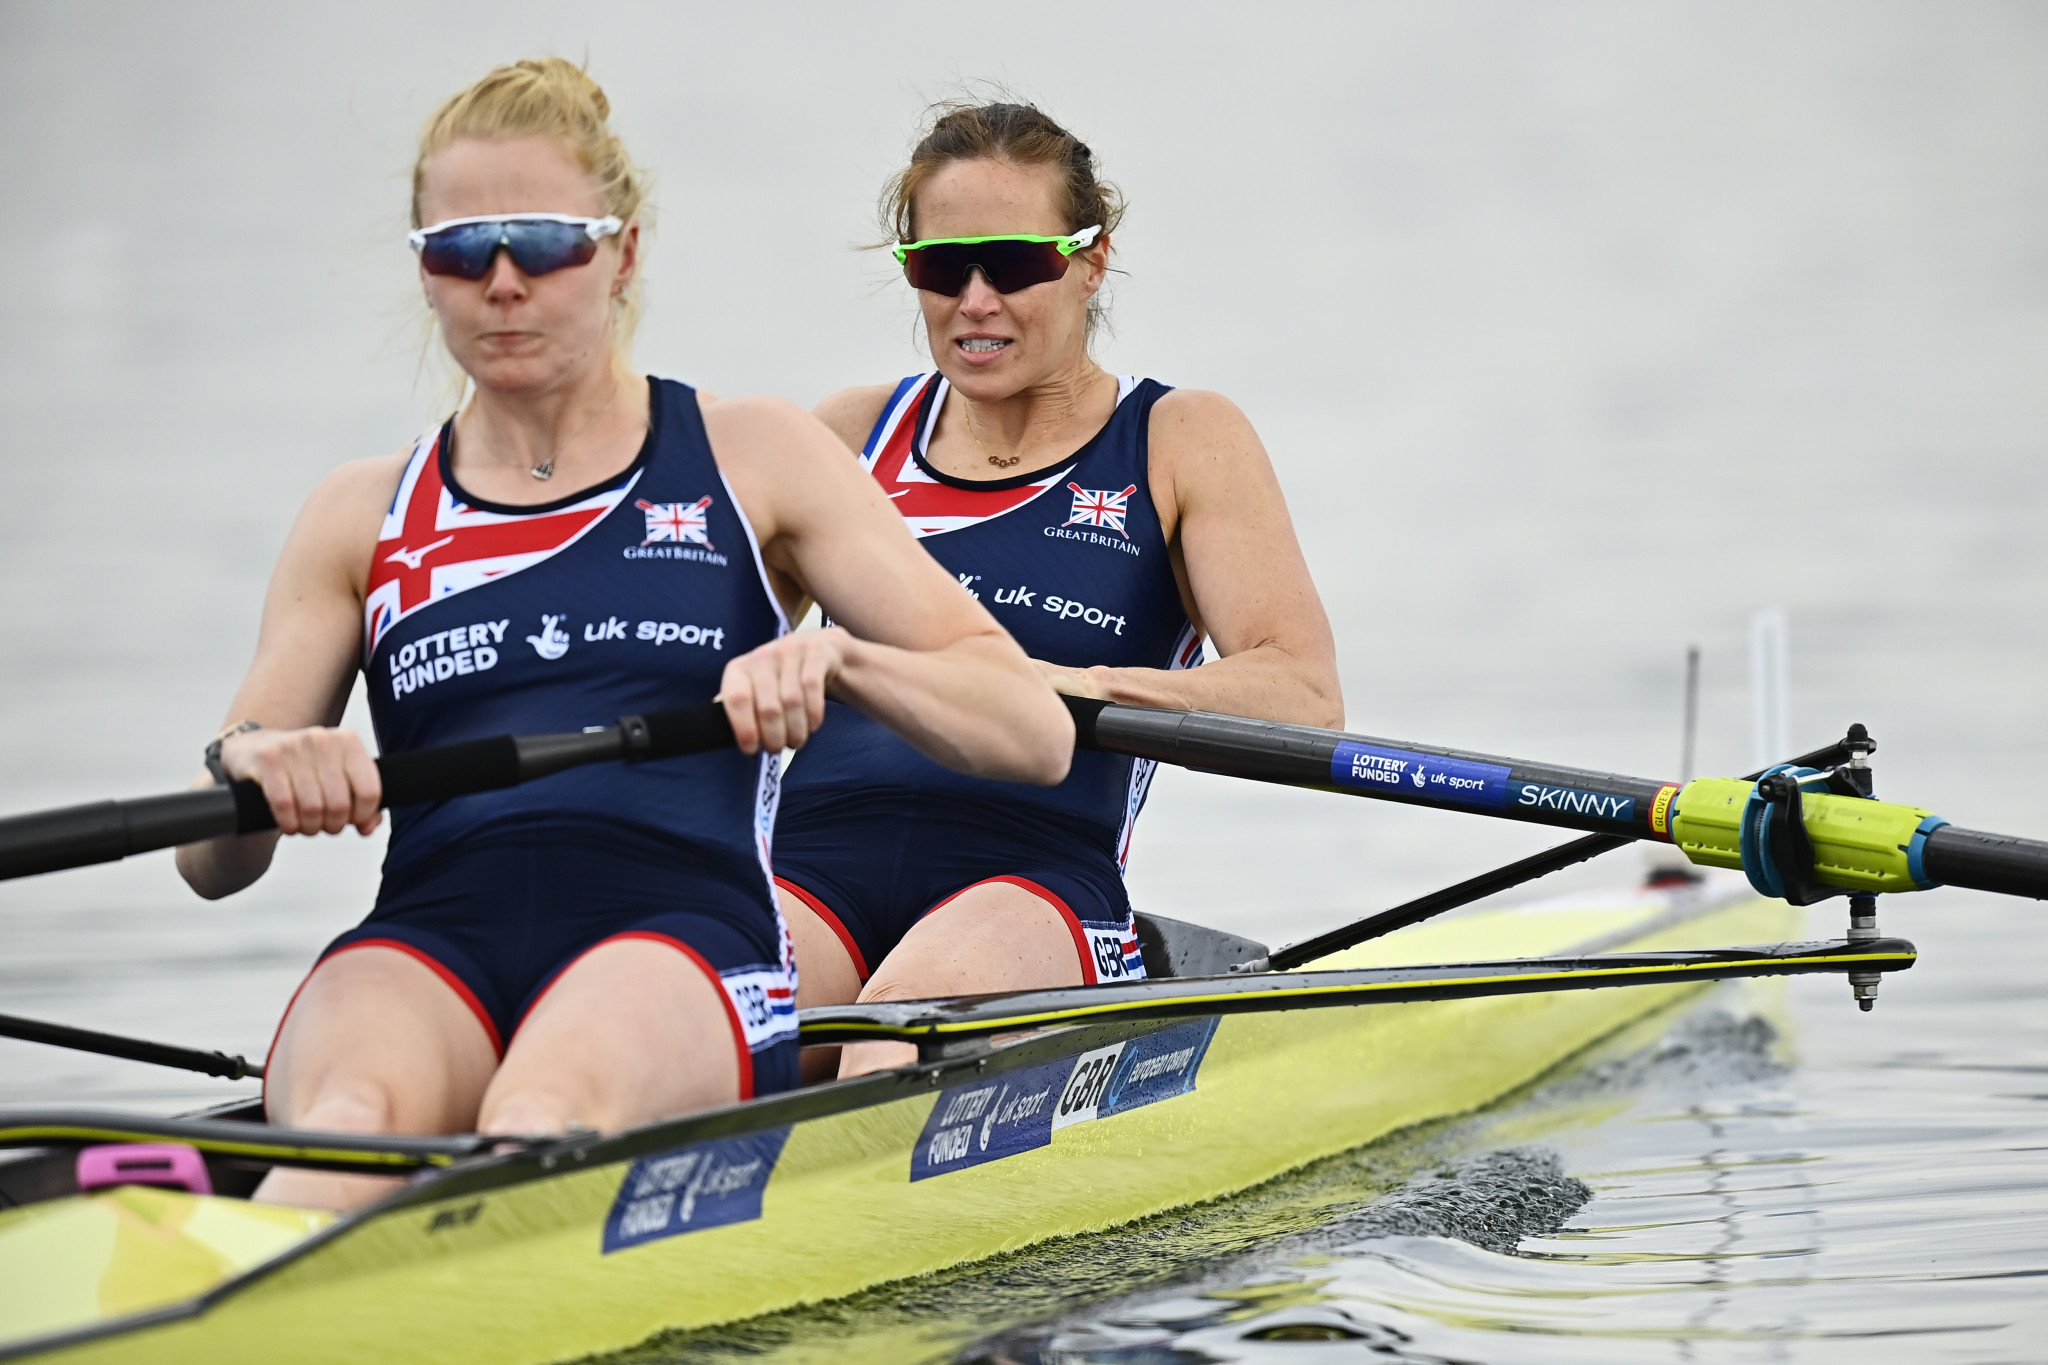 Glover impresses on return to action at European Rowing Championships